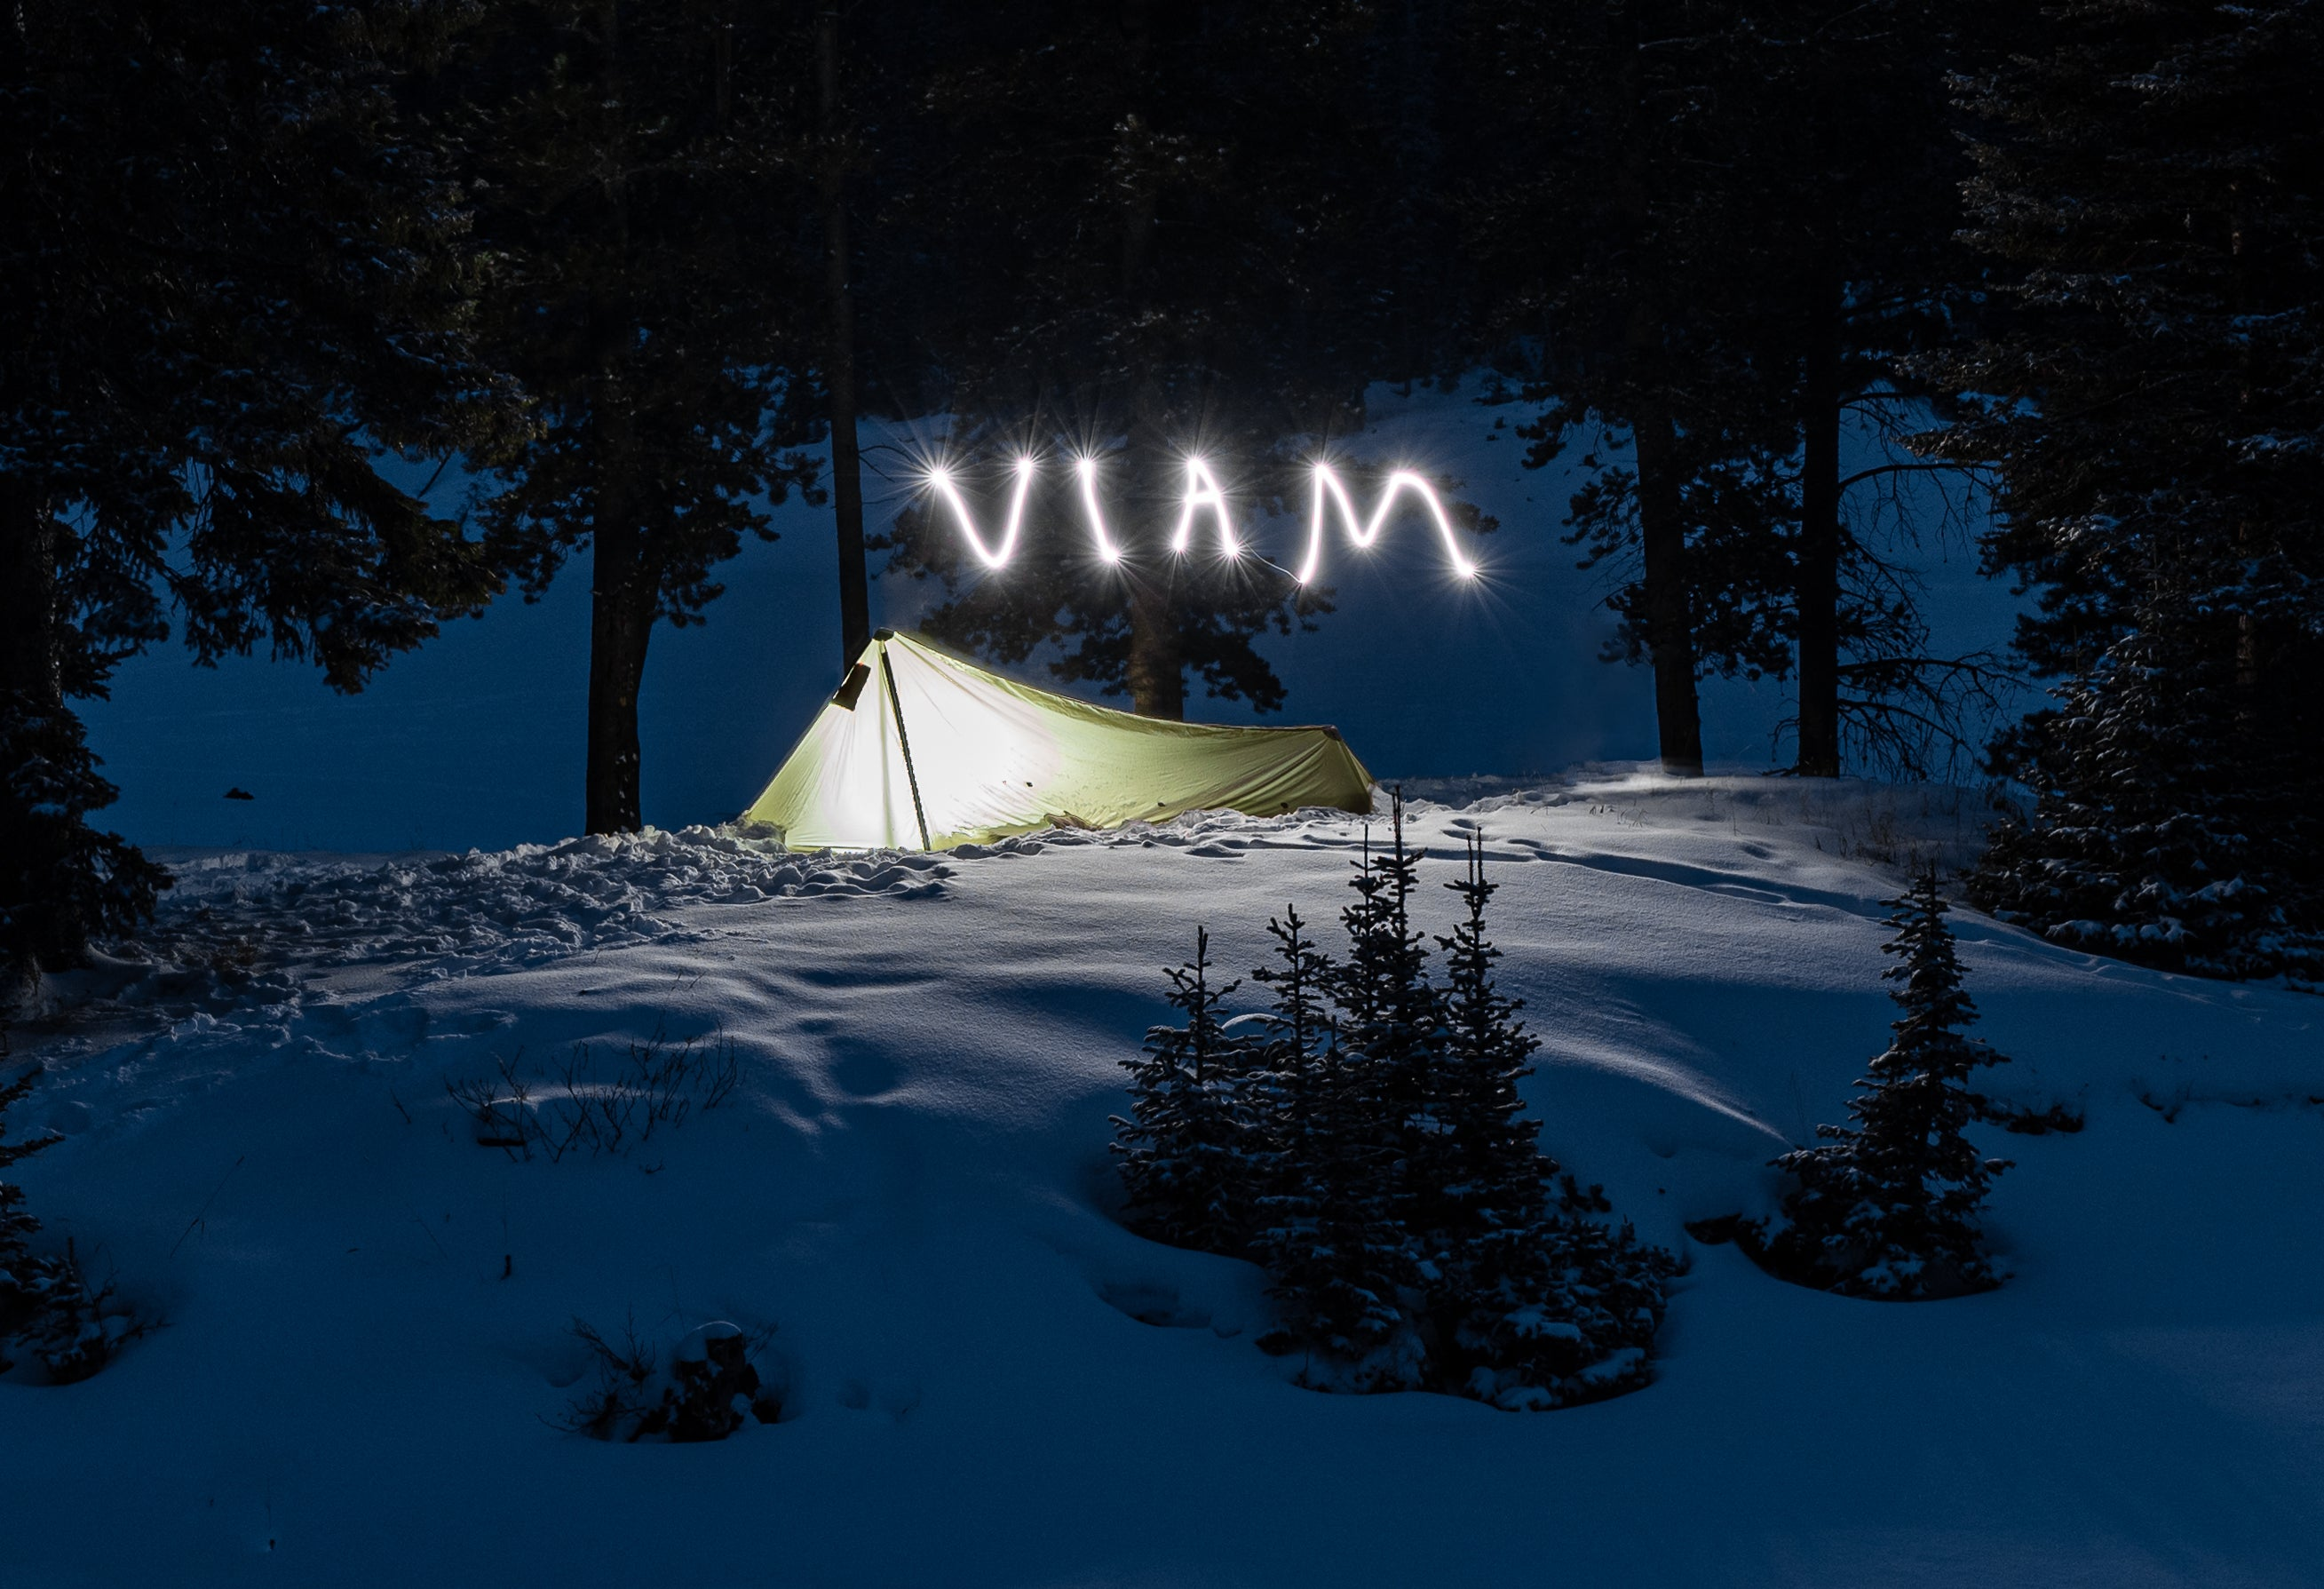 VIAM Outdoors